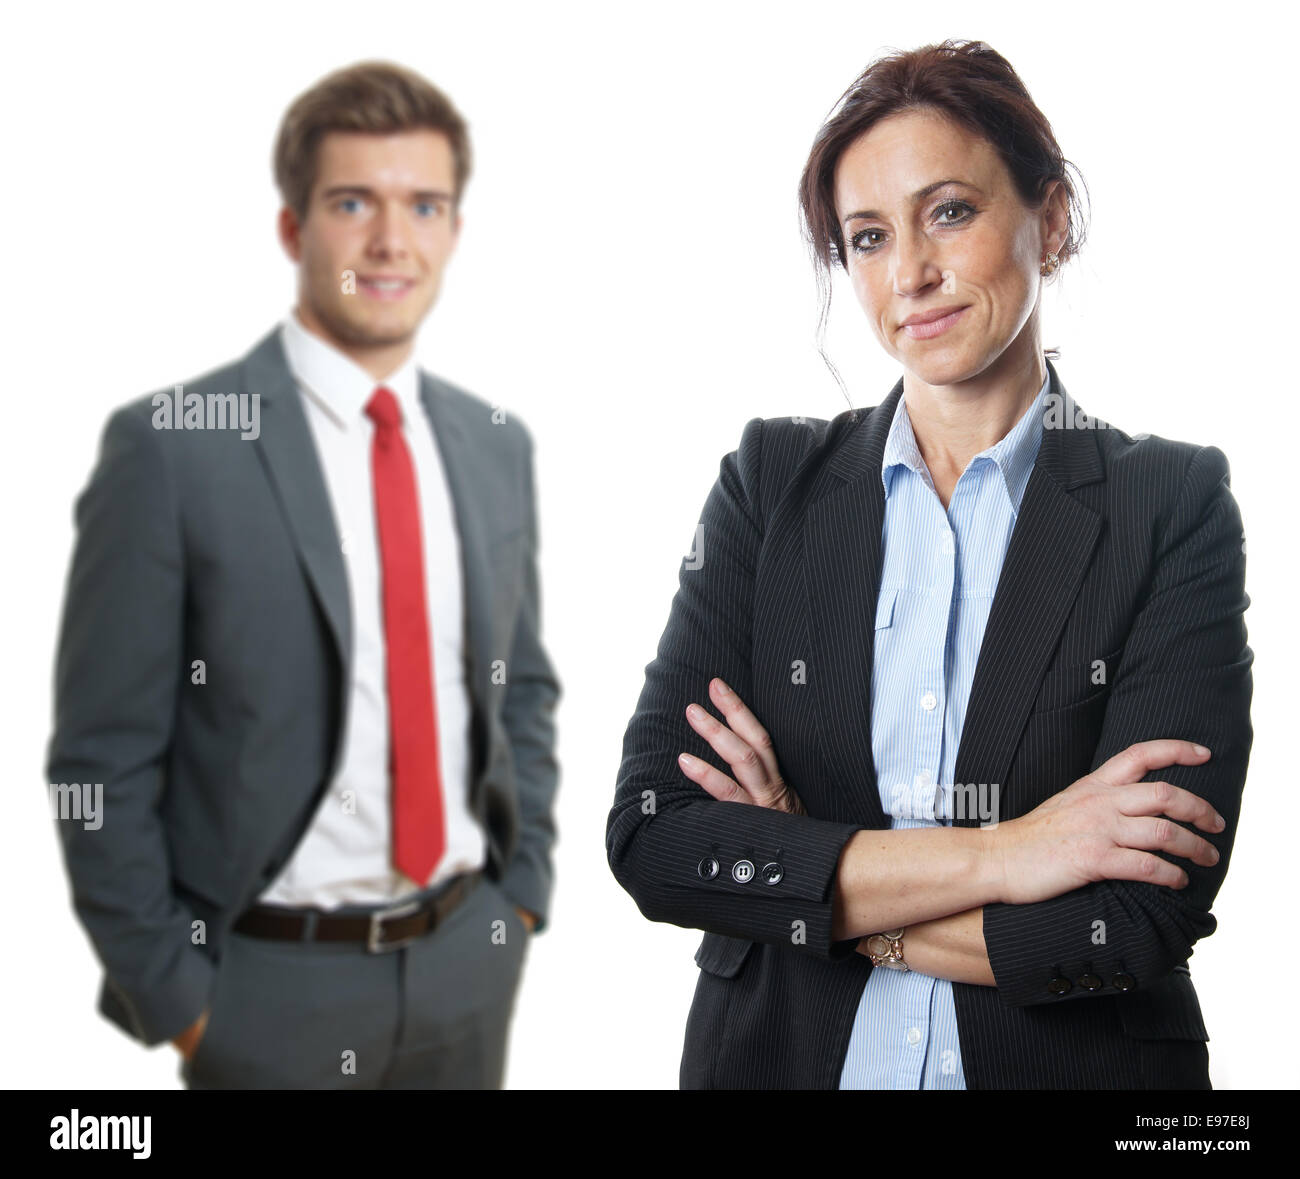 middle aged businesswoman with younger businessman in the background - Stock Image